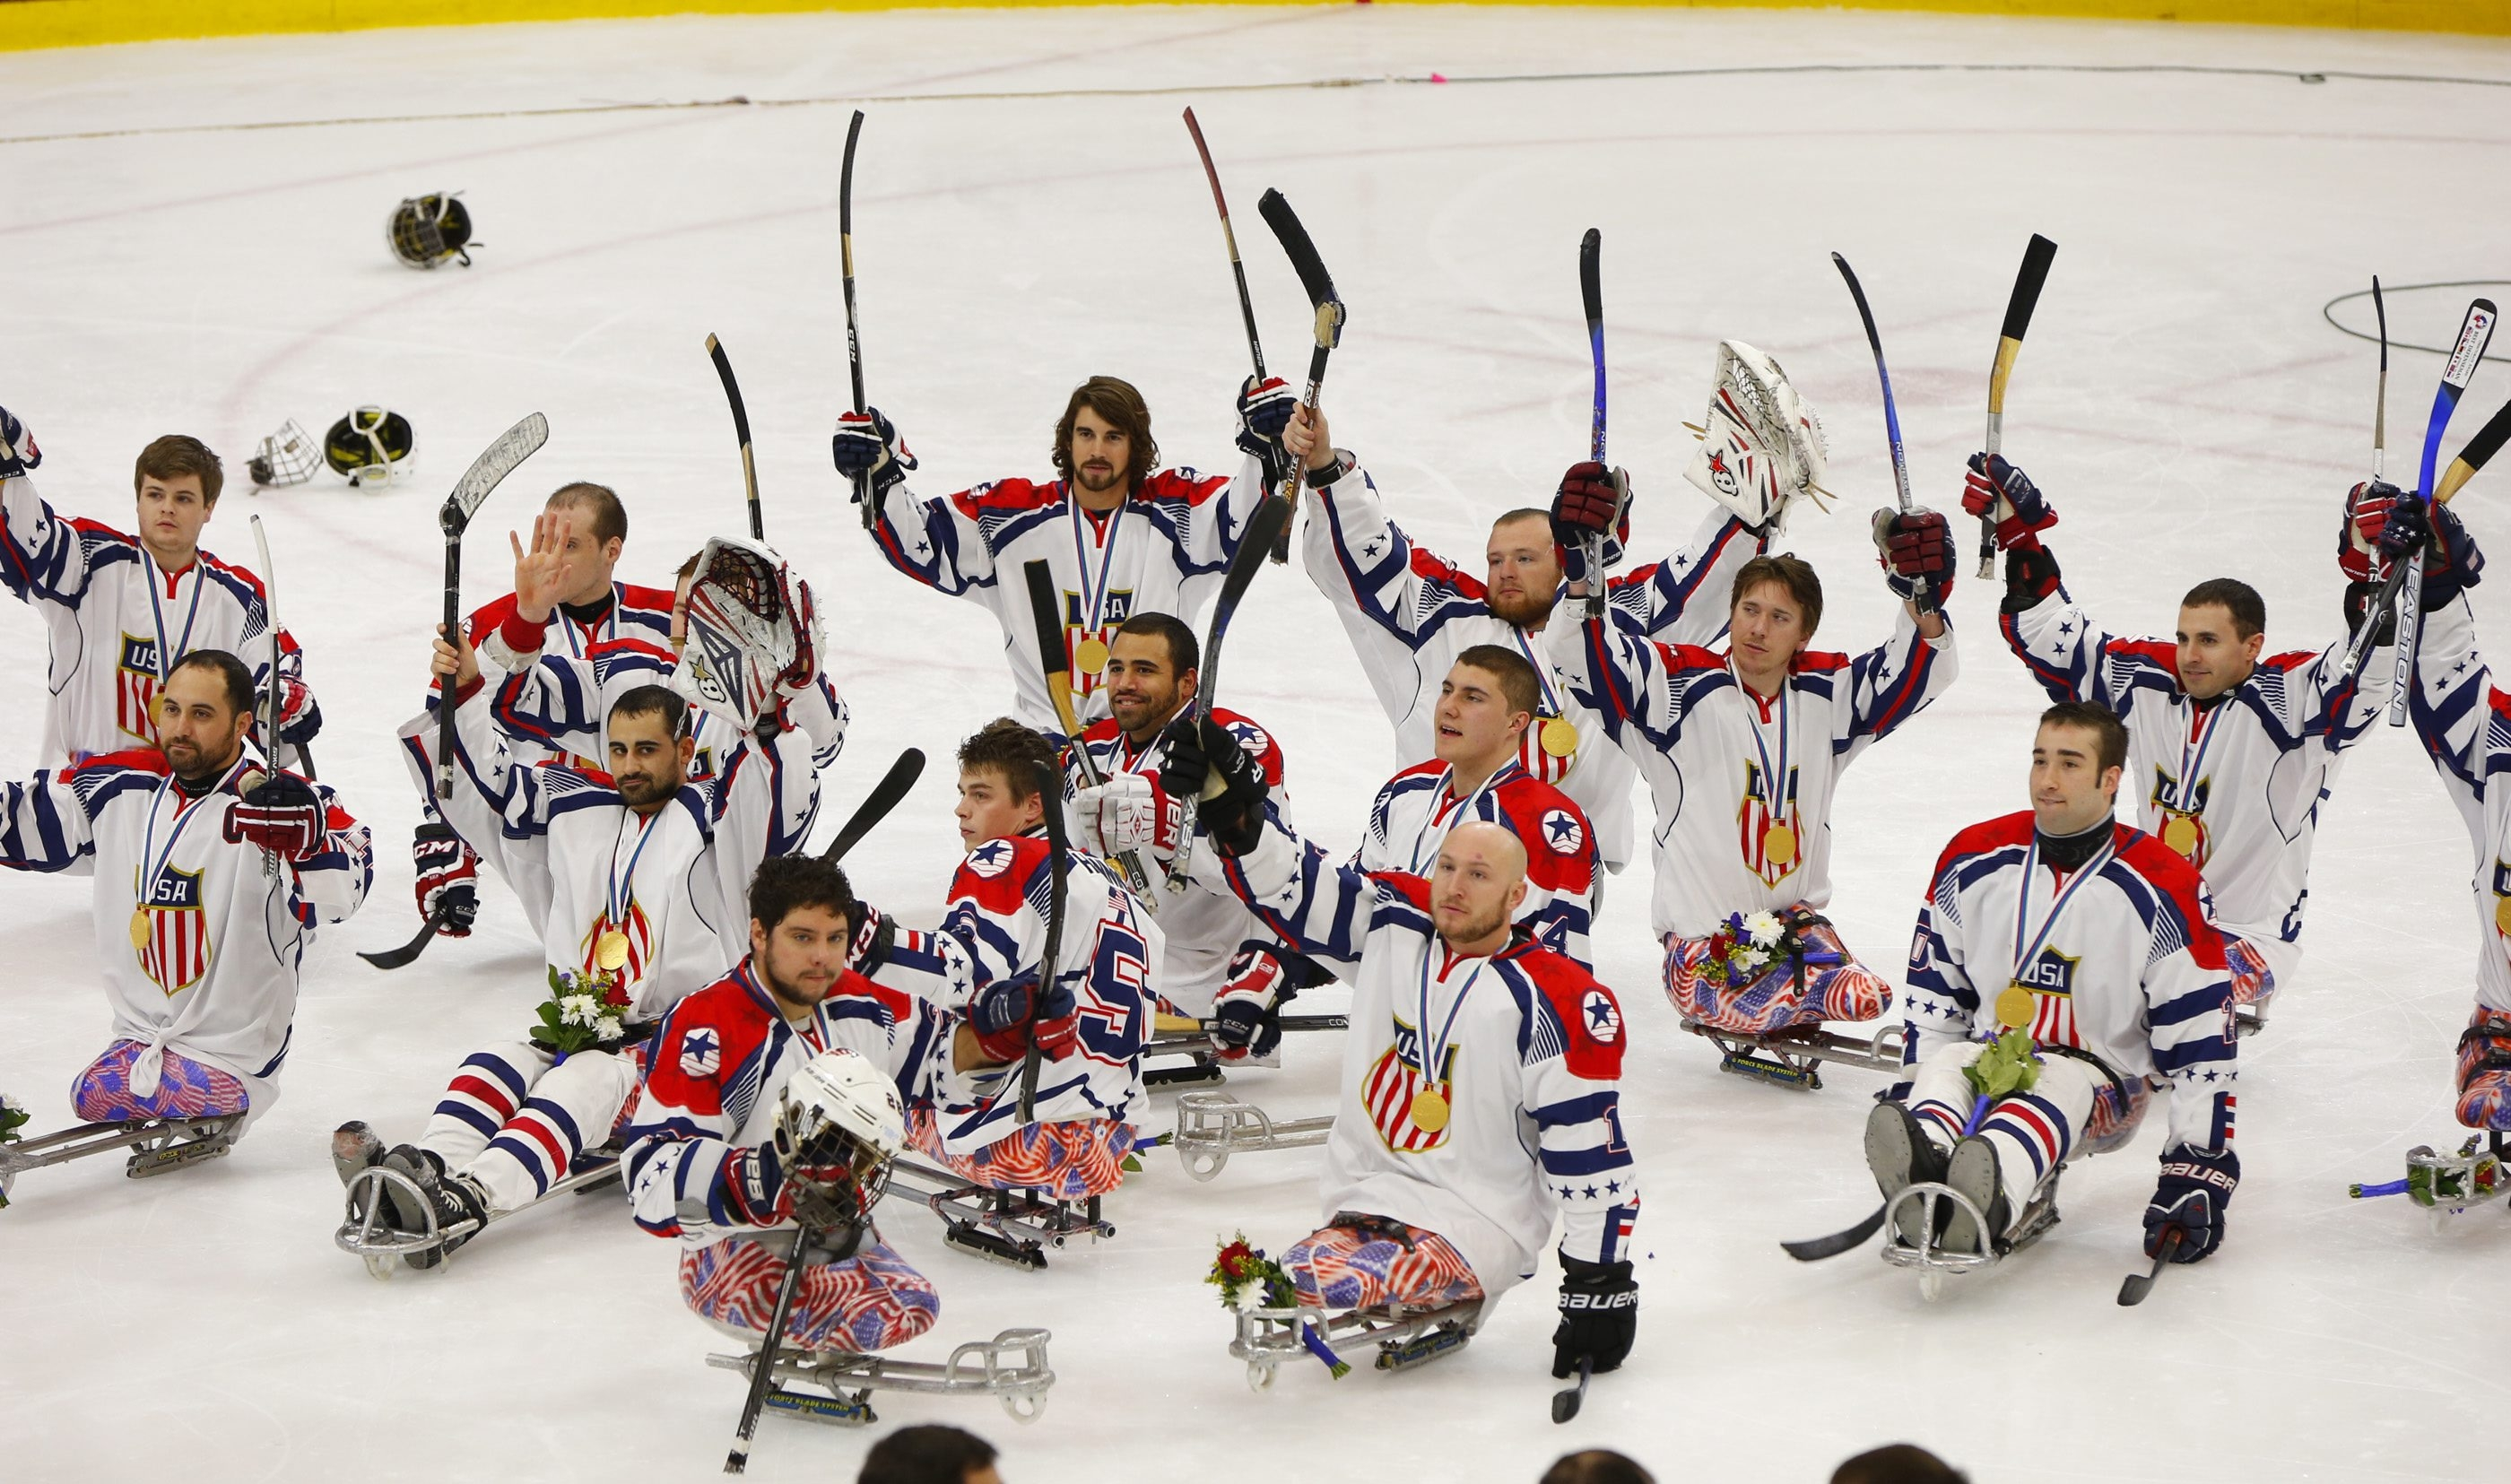 USA sledge hockey players salute the fans at HarborCenter after defeating Canada in the world championship.